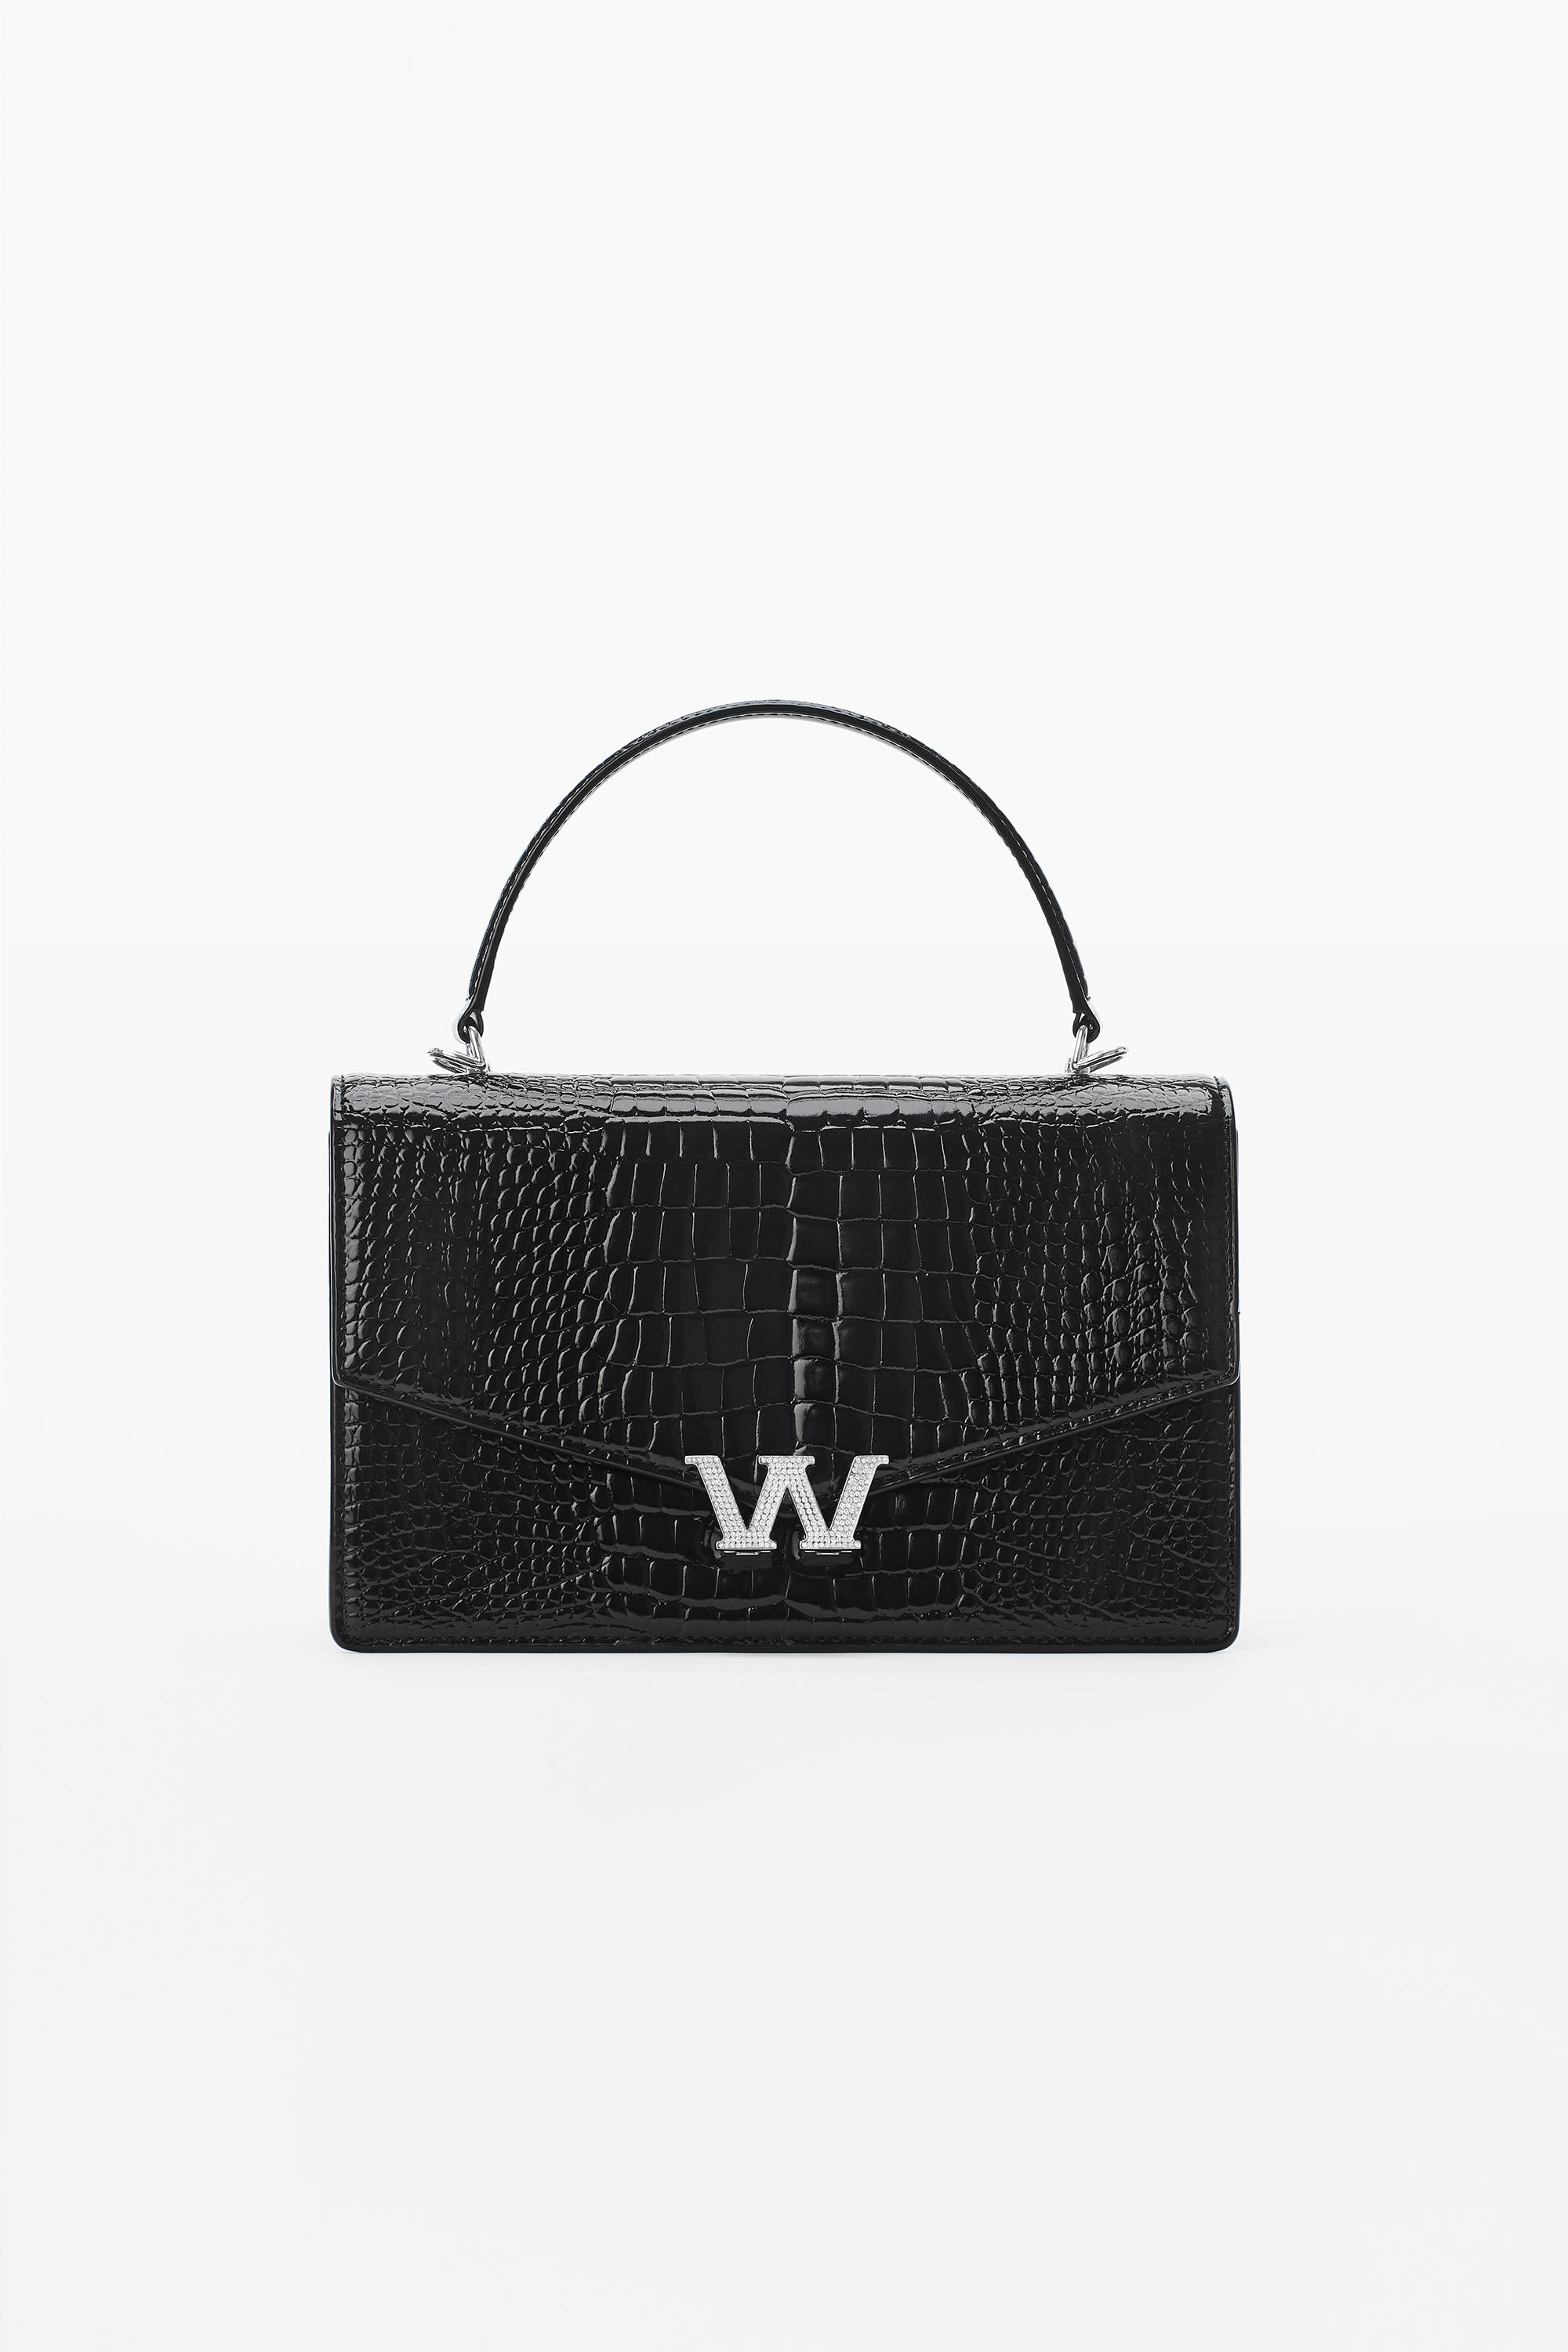 w legacy small satchel in leather